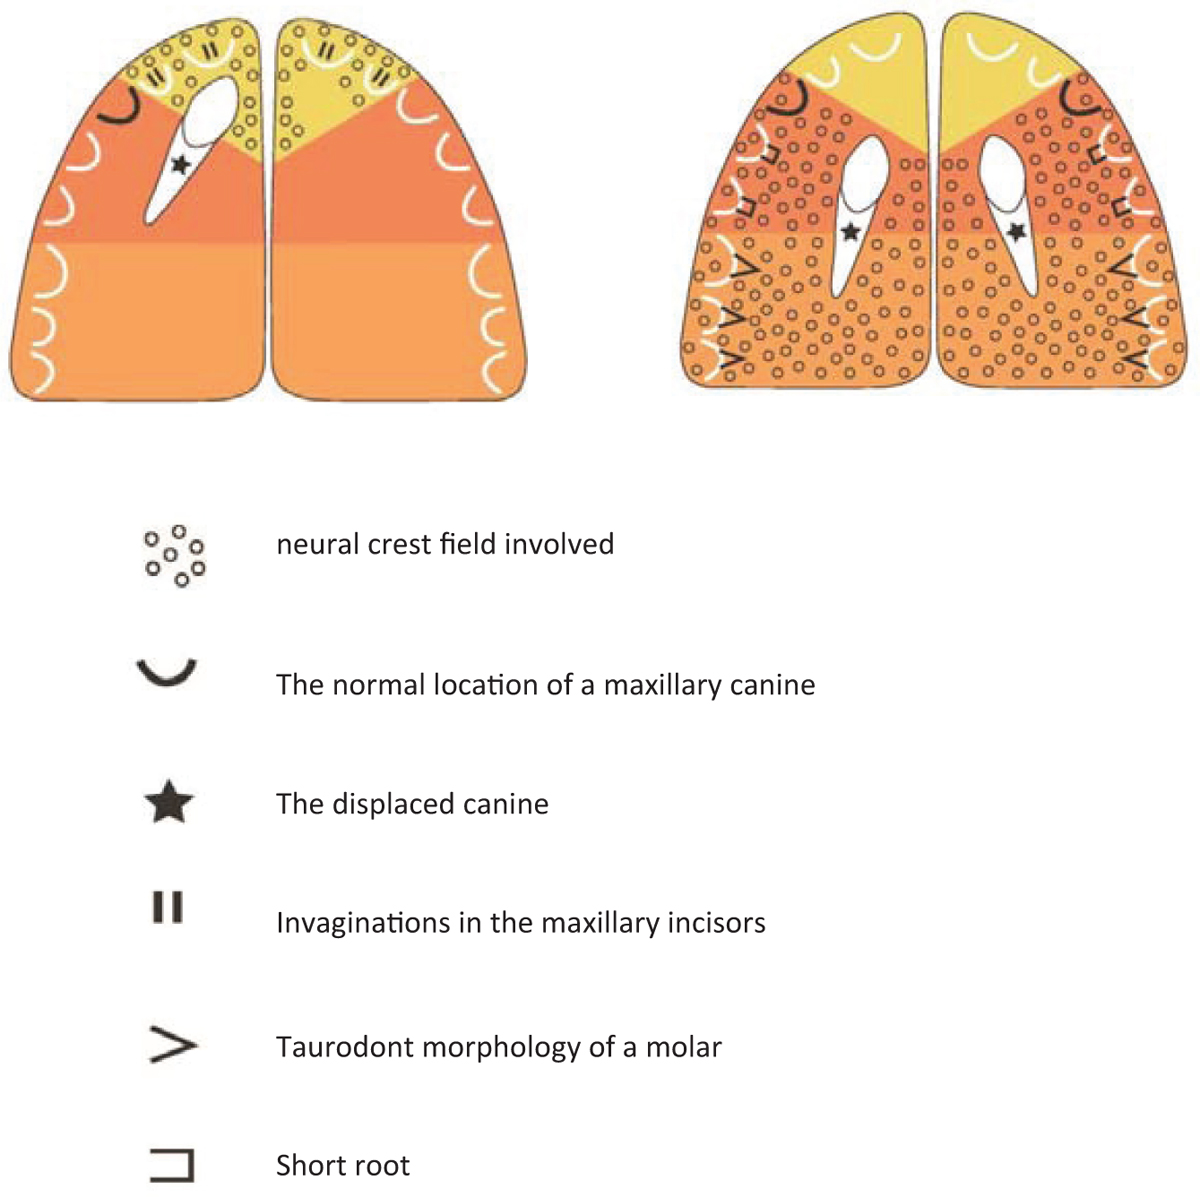 Figure 10: Schematic overview of the human palate with colored neuro-crest fields according to [Figure 1]. Left figure indicates a case with unilateral displaced maxillary canine. Right figure indicates a case with bilateral displaced maxillary canines. Note the different morphology of the incisors premolars and molars in the two different displaced conditions. Characteristic for the unilateral displaced canine case is the observation of invaginations and for the bilateral case the observations of short premolars and taurodontic molars